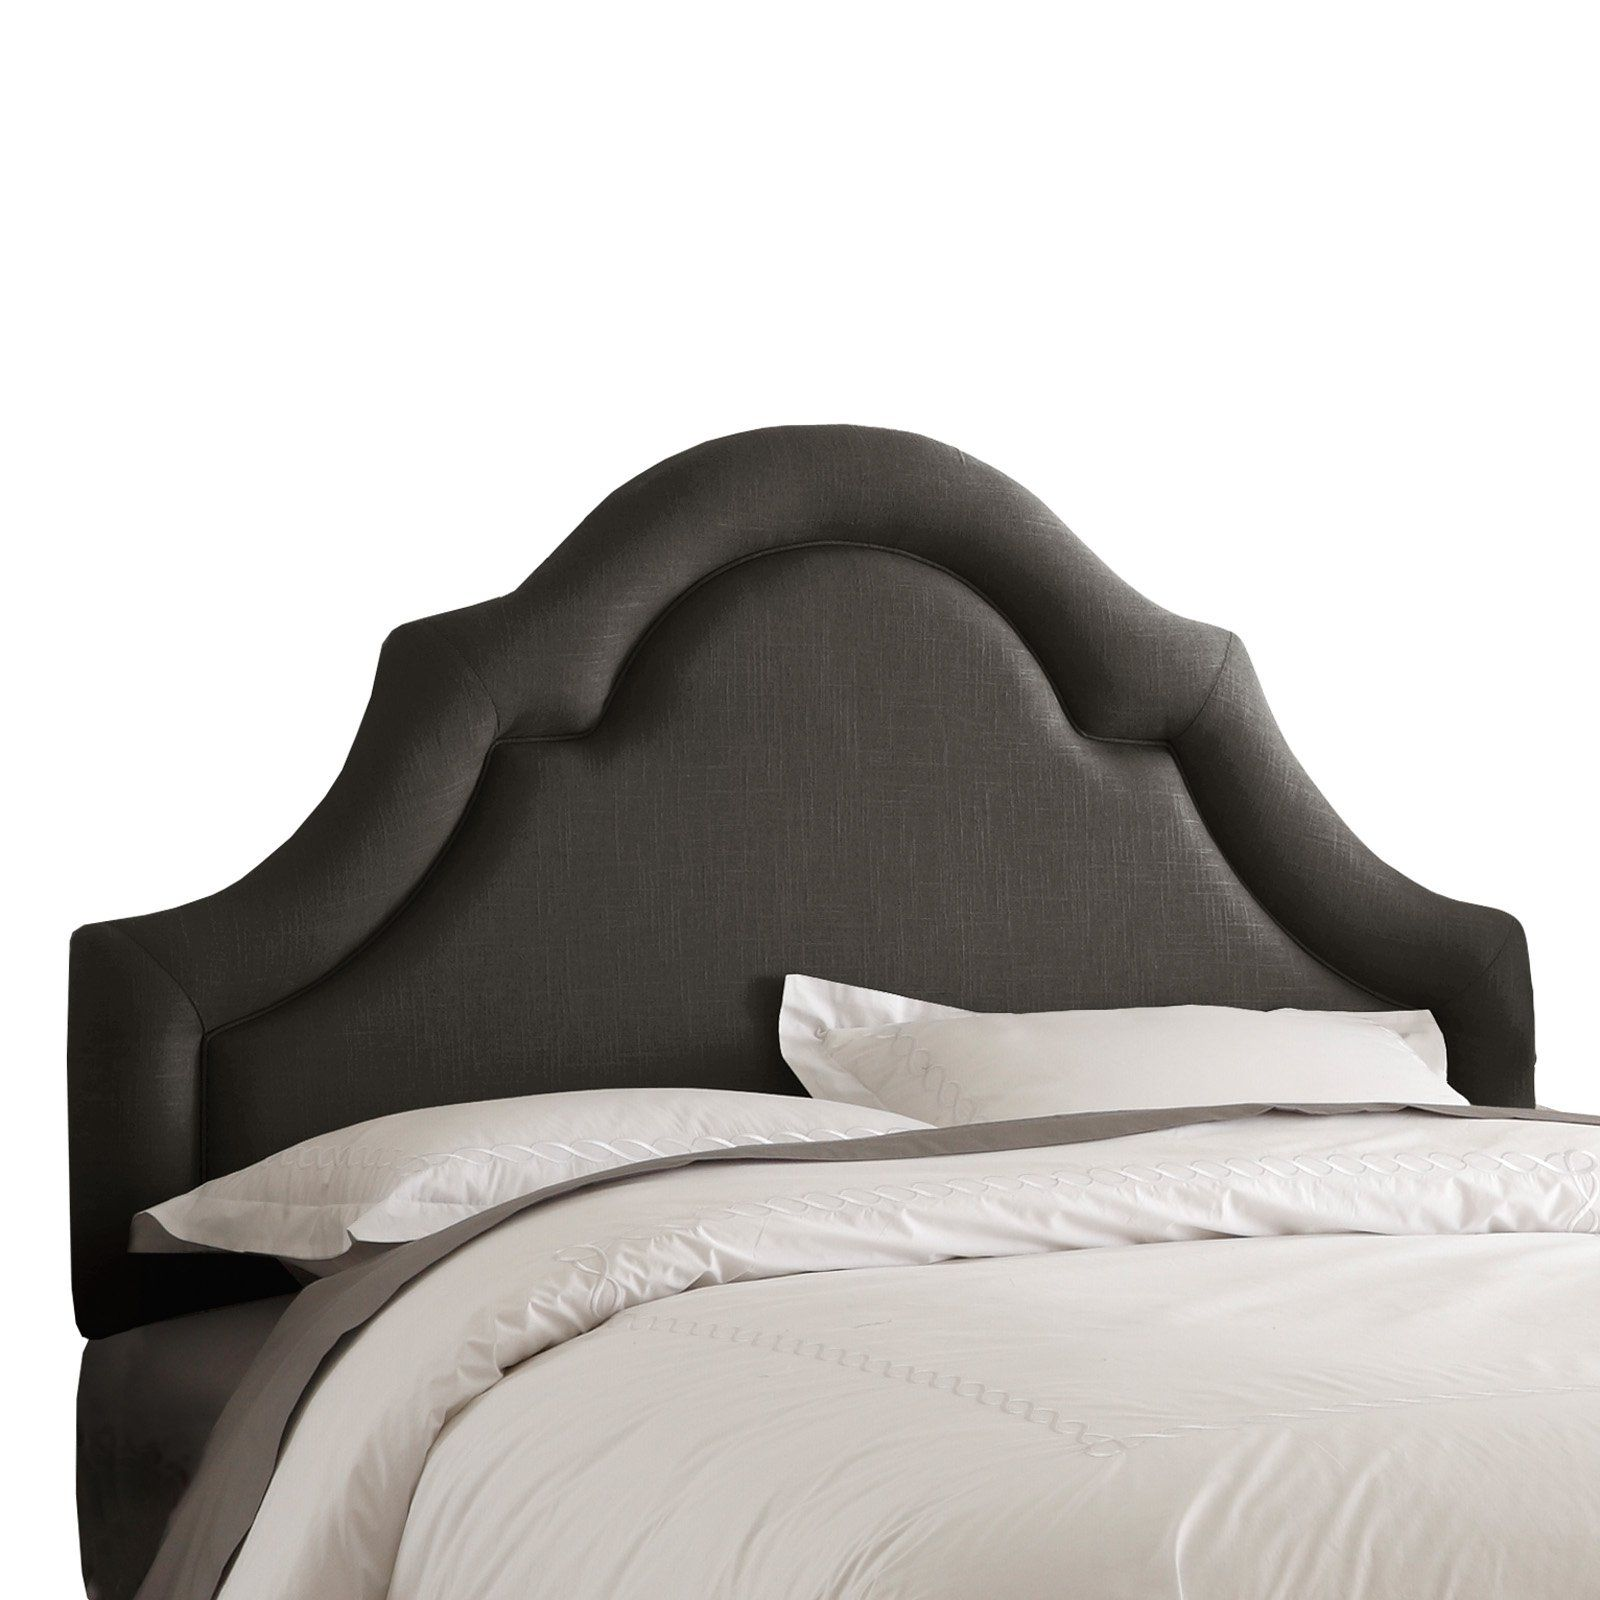 High Arch Border Upholstered Headboard Upholstered Headboard Headboard Arched Headboard